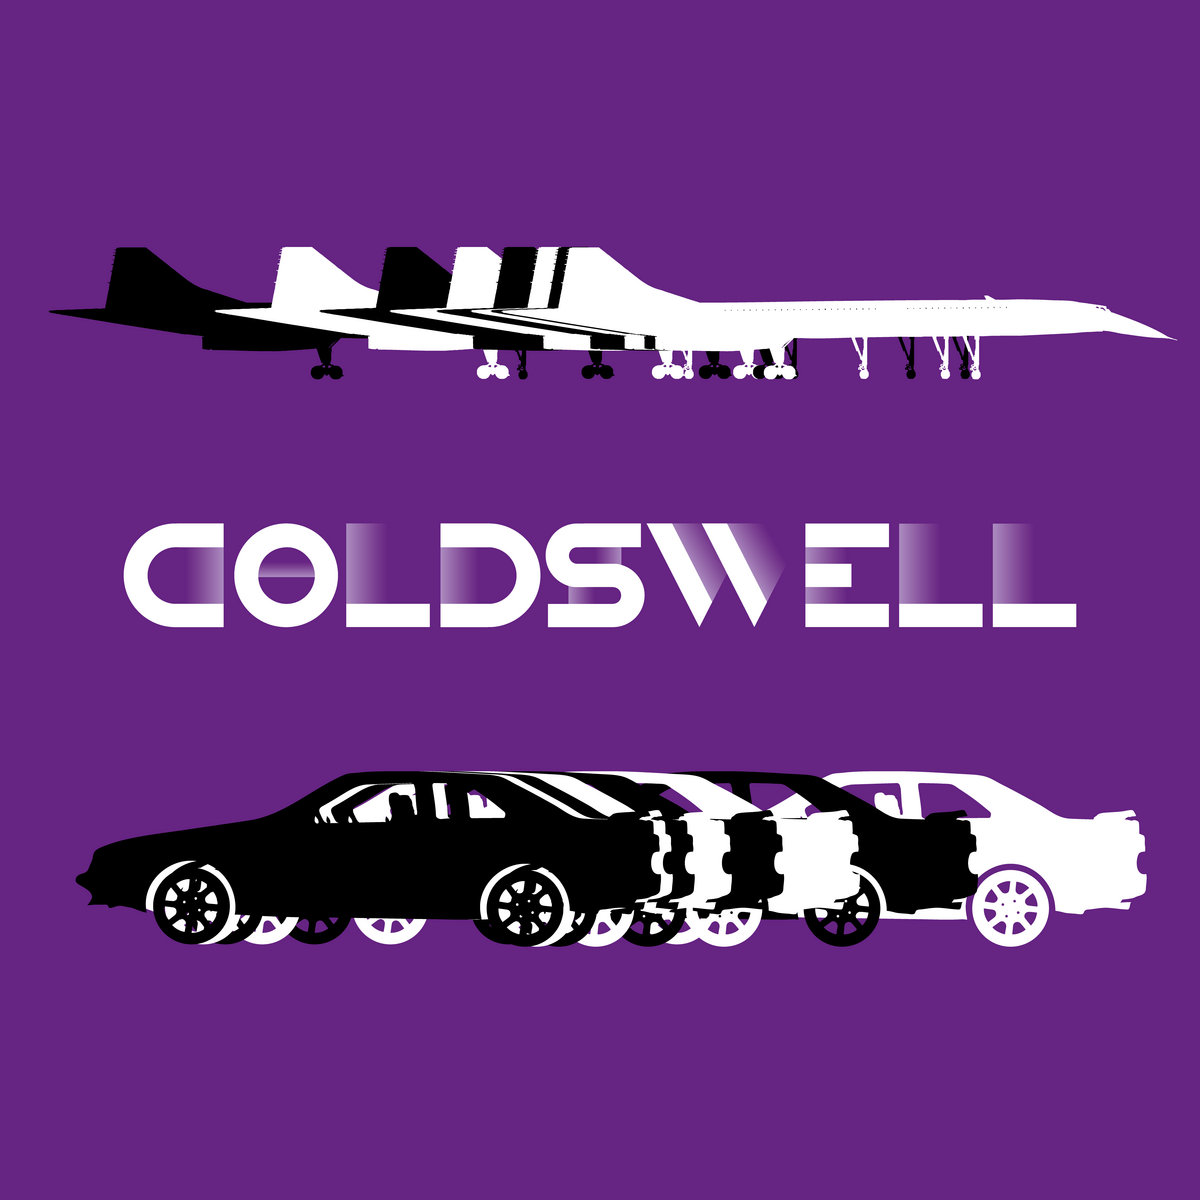 Cars & Planes | Coldswell